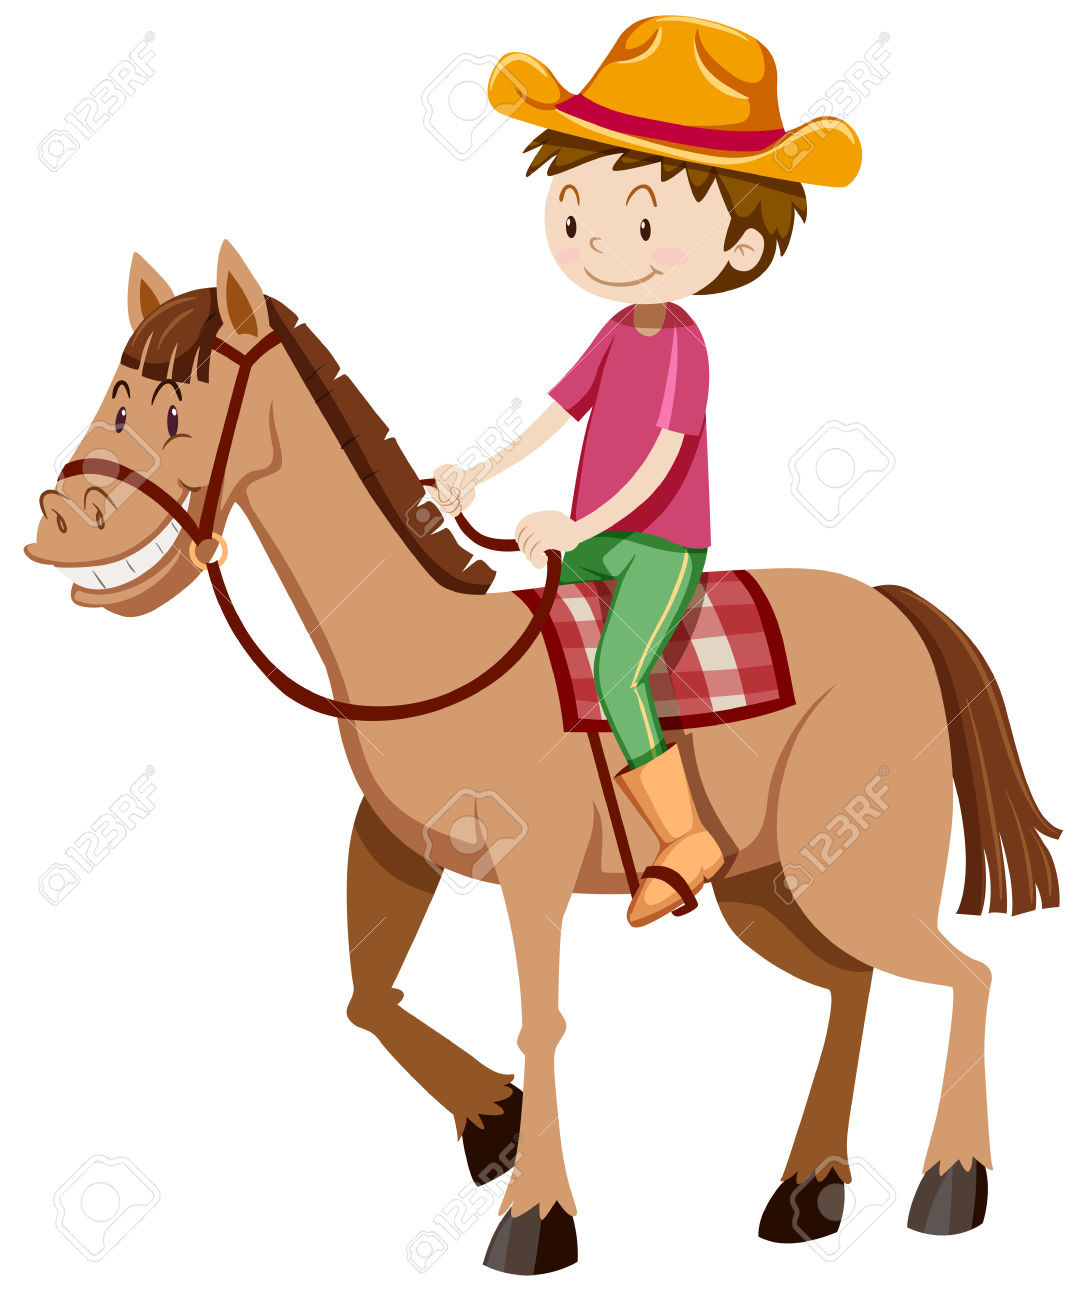 7,082 Ride Horse Stock Vector Illustration And Royalty Free Ride.